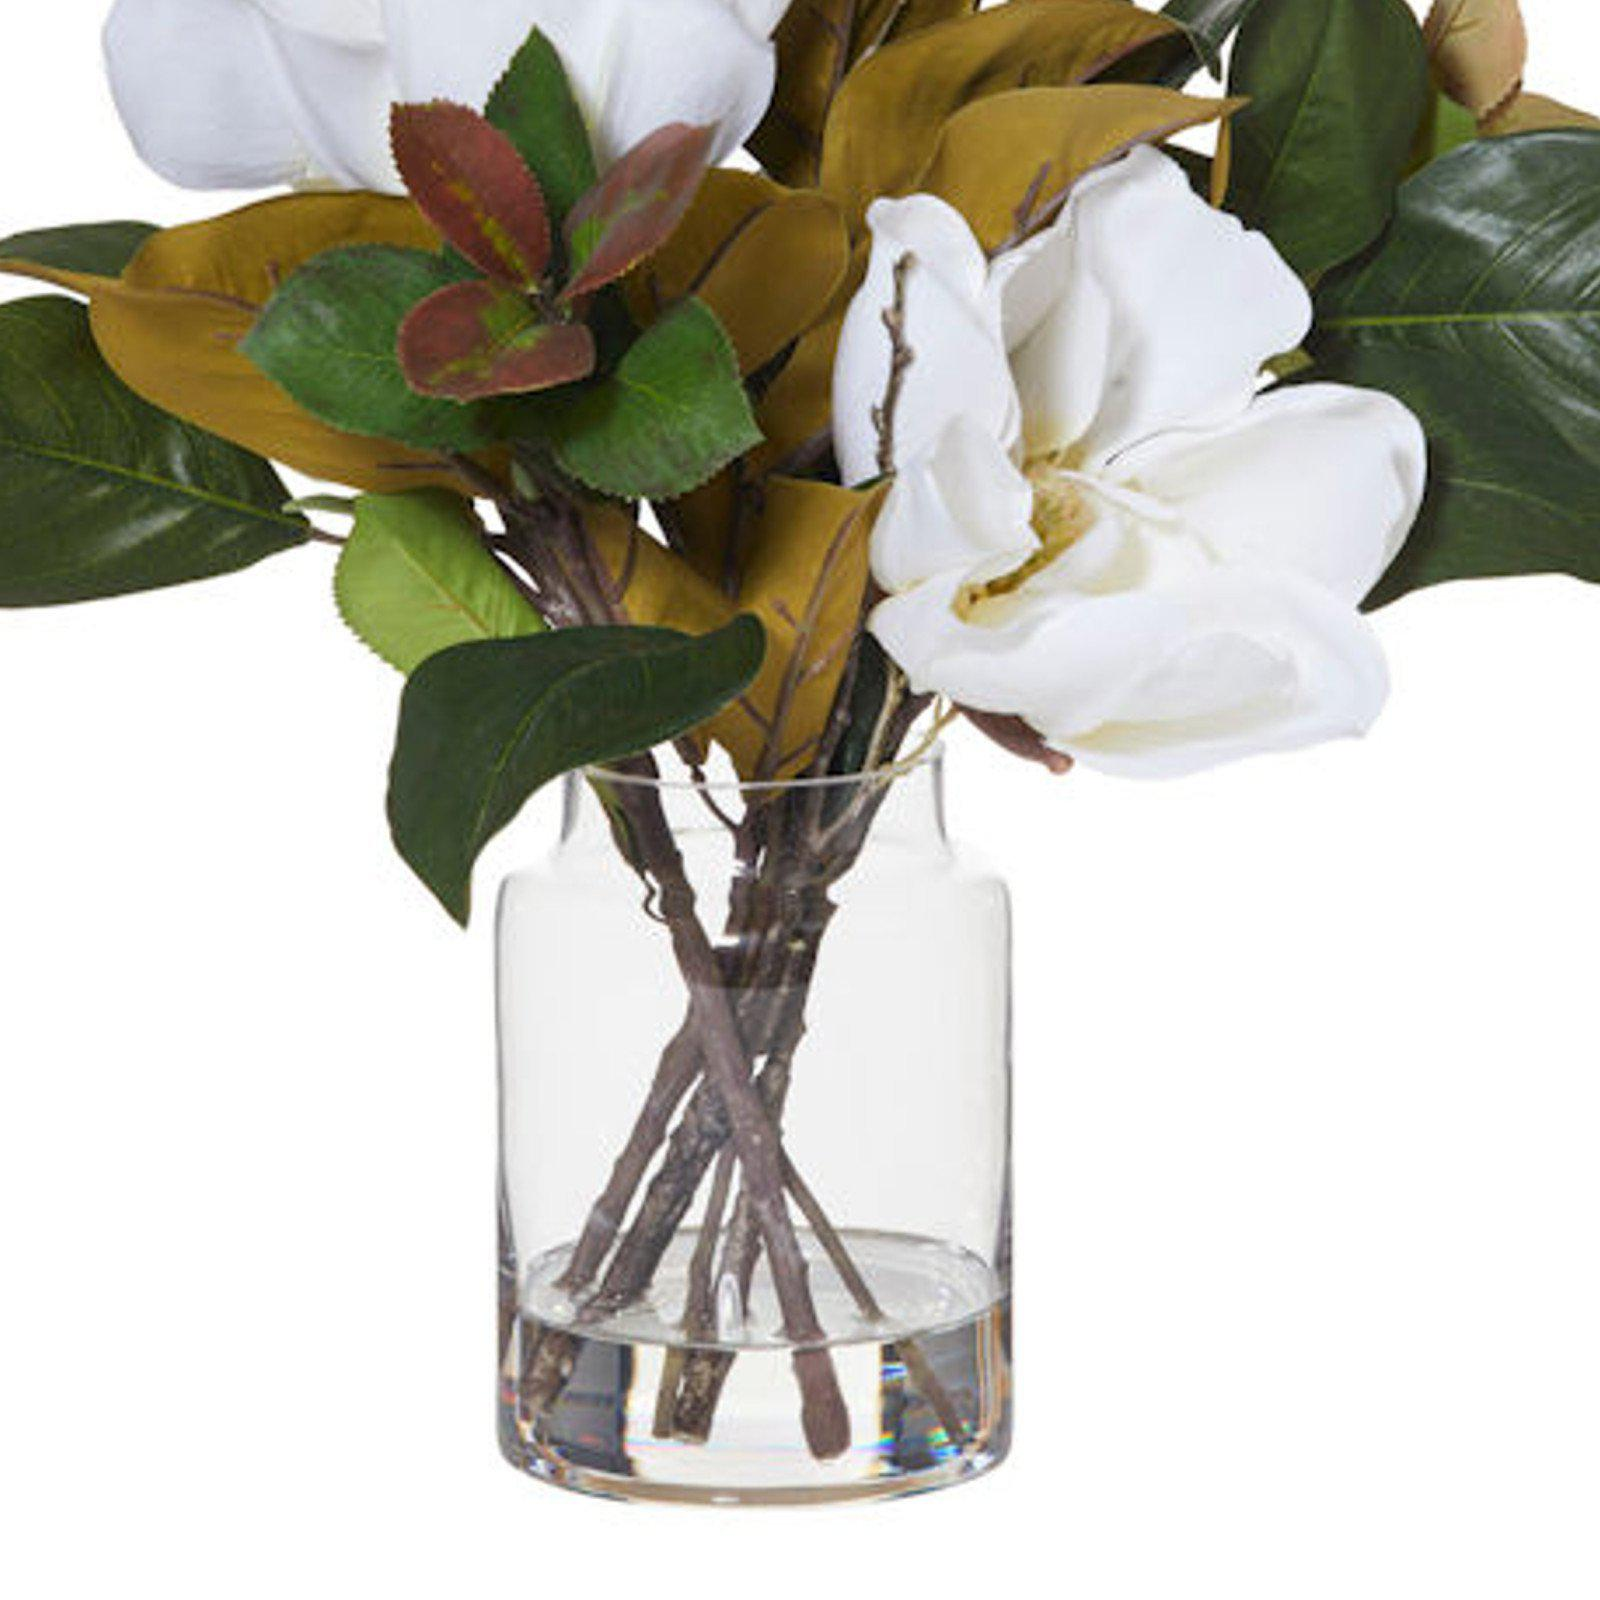 Magnolia Mix With Pail Vase- Artificial Flower / Floral Arrangement-artificial flowers and plants-Chef's Quality Cookware